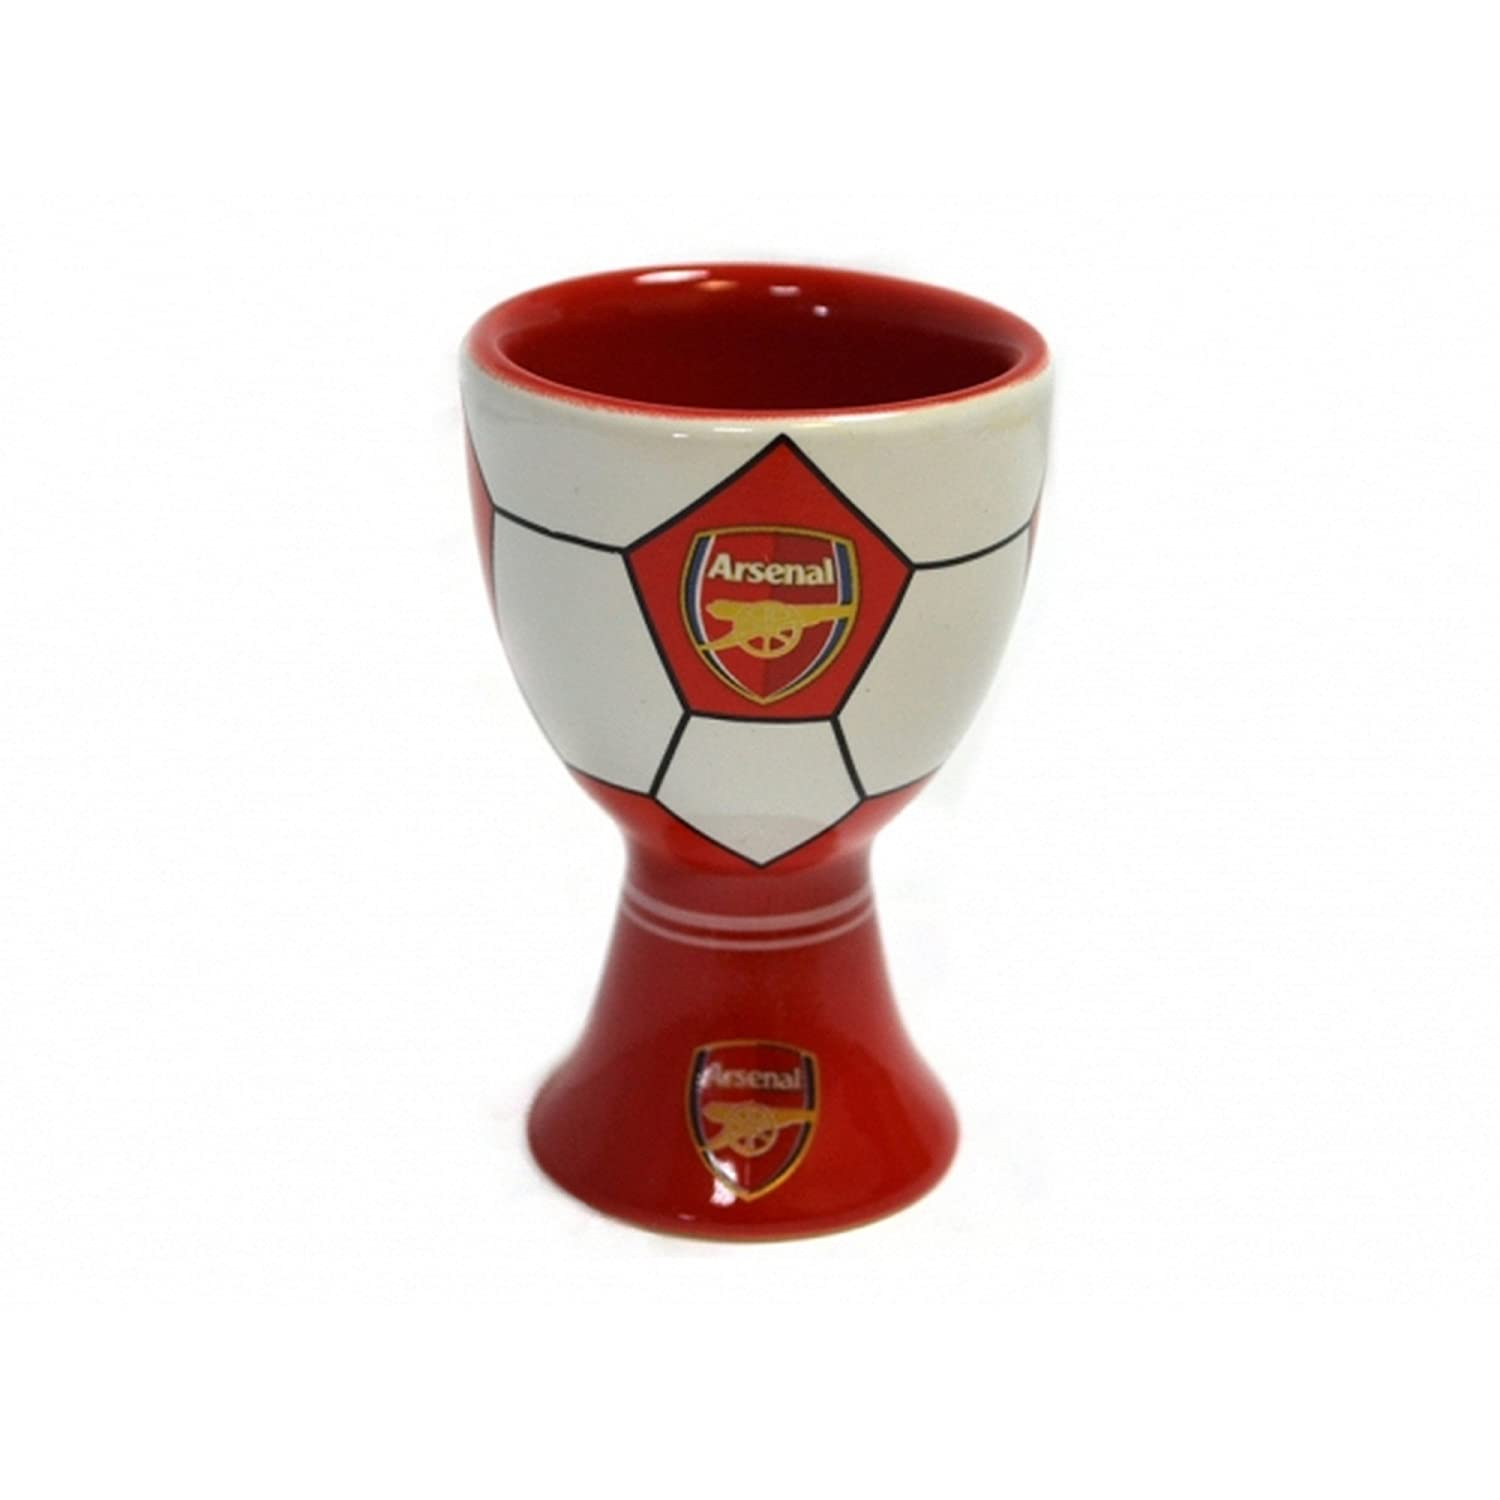 Arsenal FC Official Football Egg Cup (One Size) (Red/White/Gold) UTBS229_1